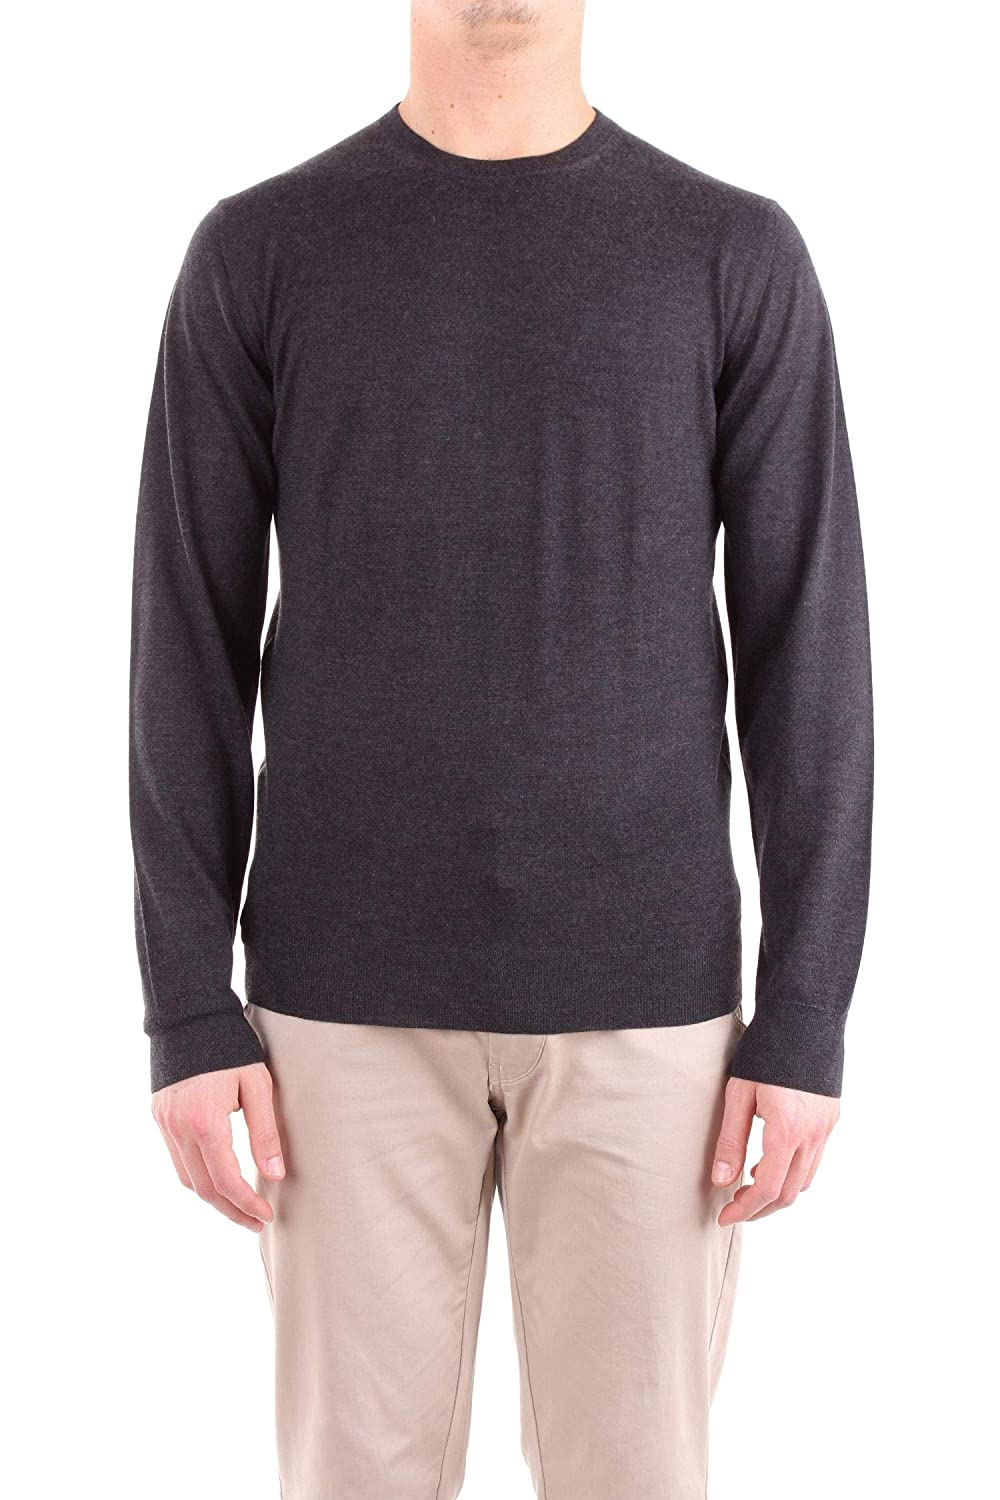 Fedeli Men's 500DERBYGREY Grey Wool Sweater